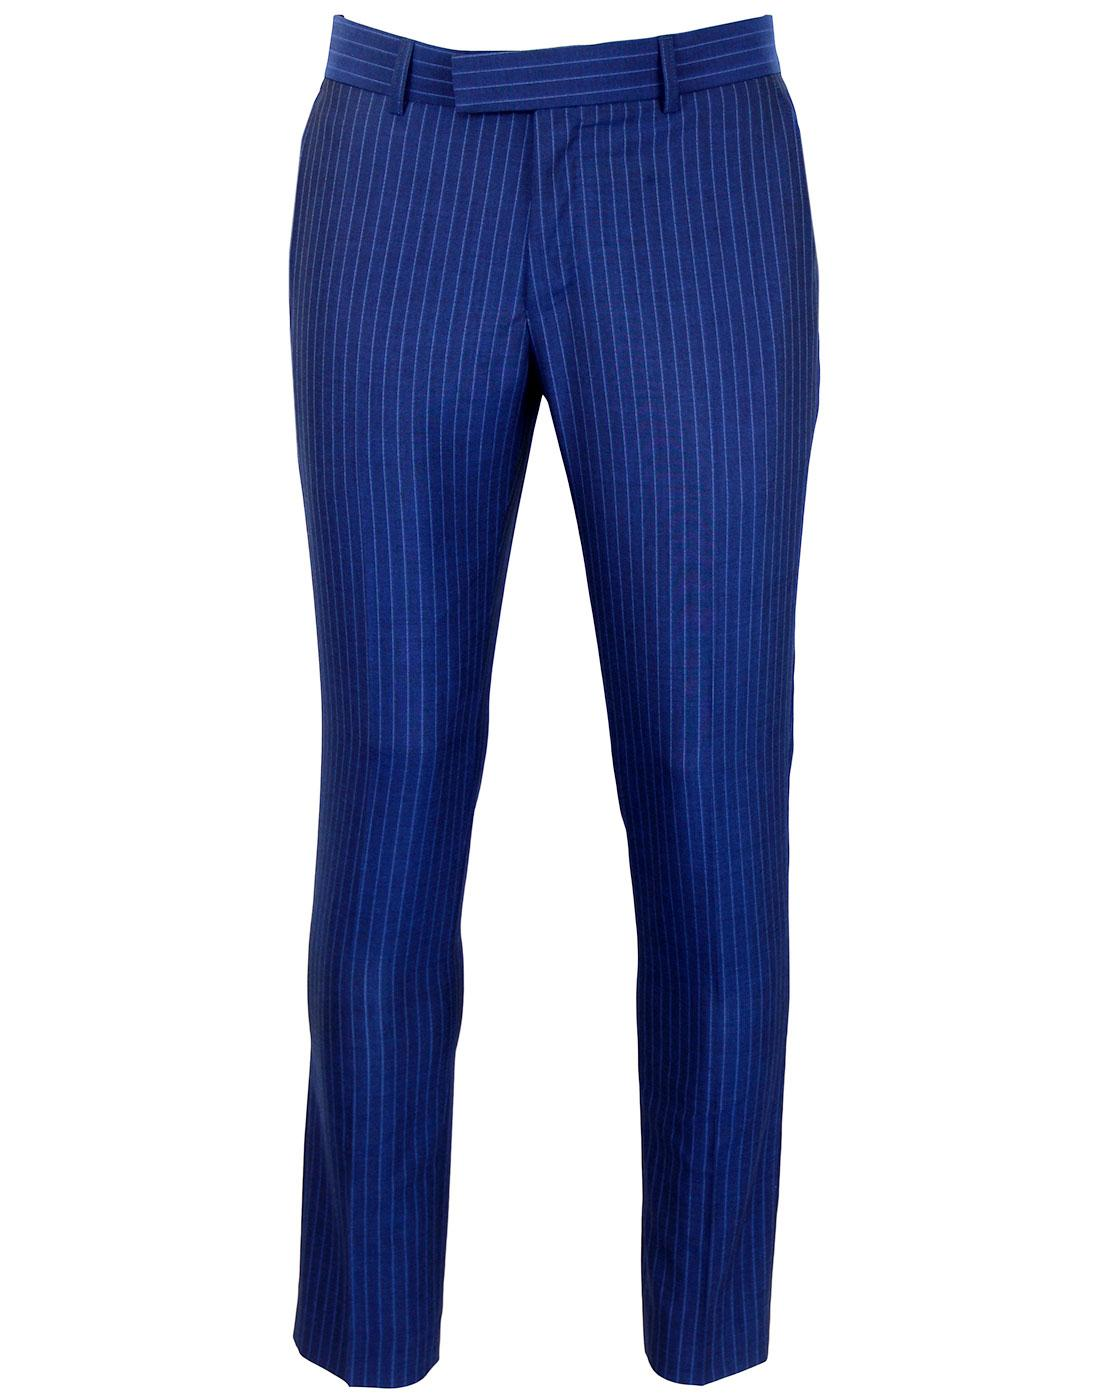 MADCAP ENGLAND Mod Royal Pinstripe Suit Trousers